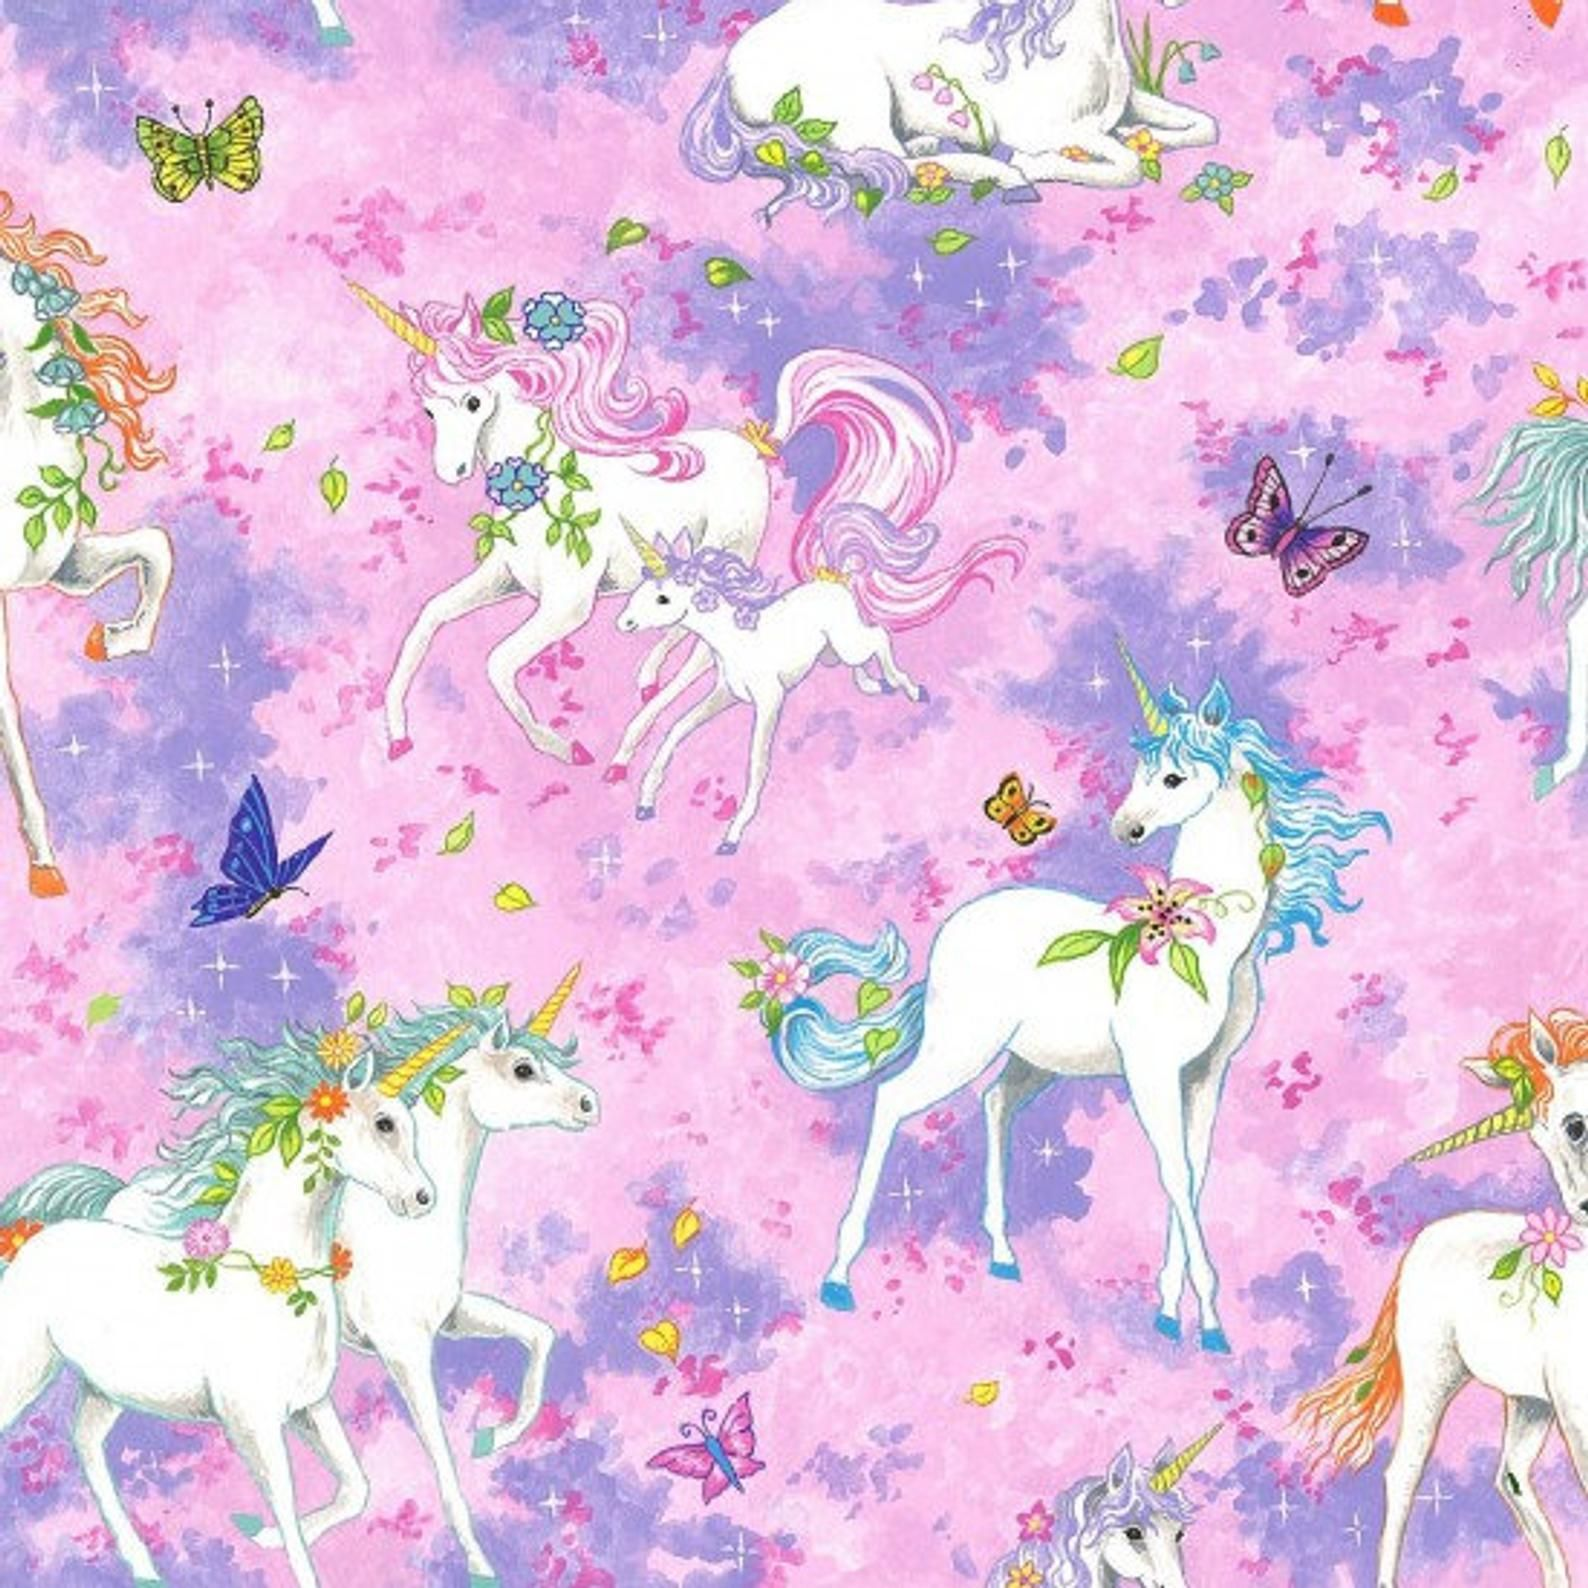 Quilting 1 metre of UNICORNS on PINK,100/% COTTON FABRIC,Sewing,PATCHWORK,Craft